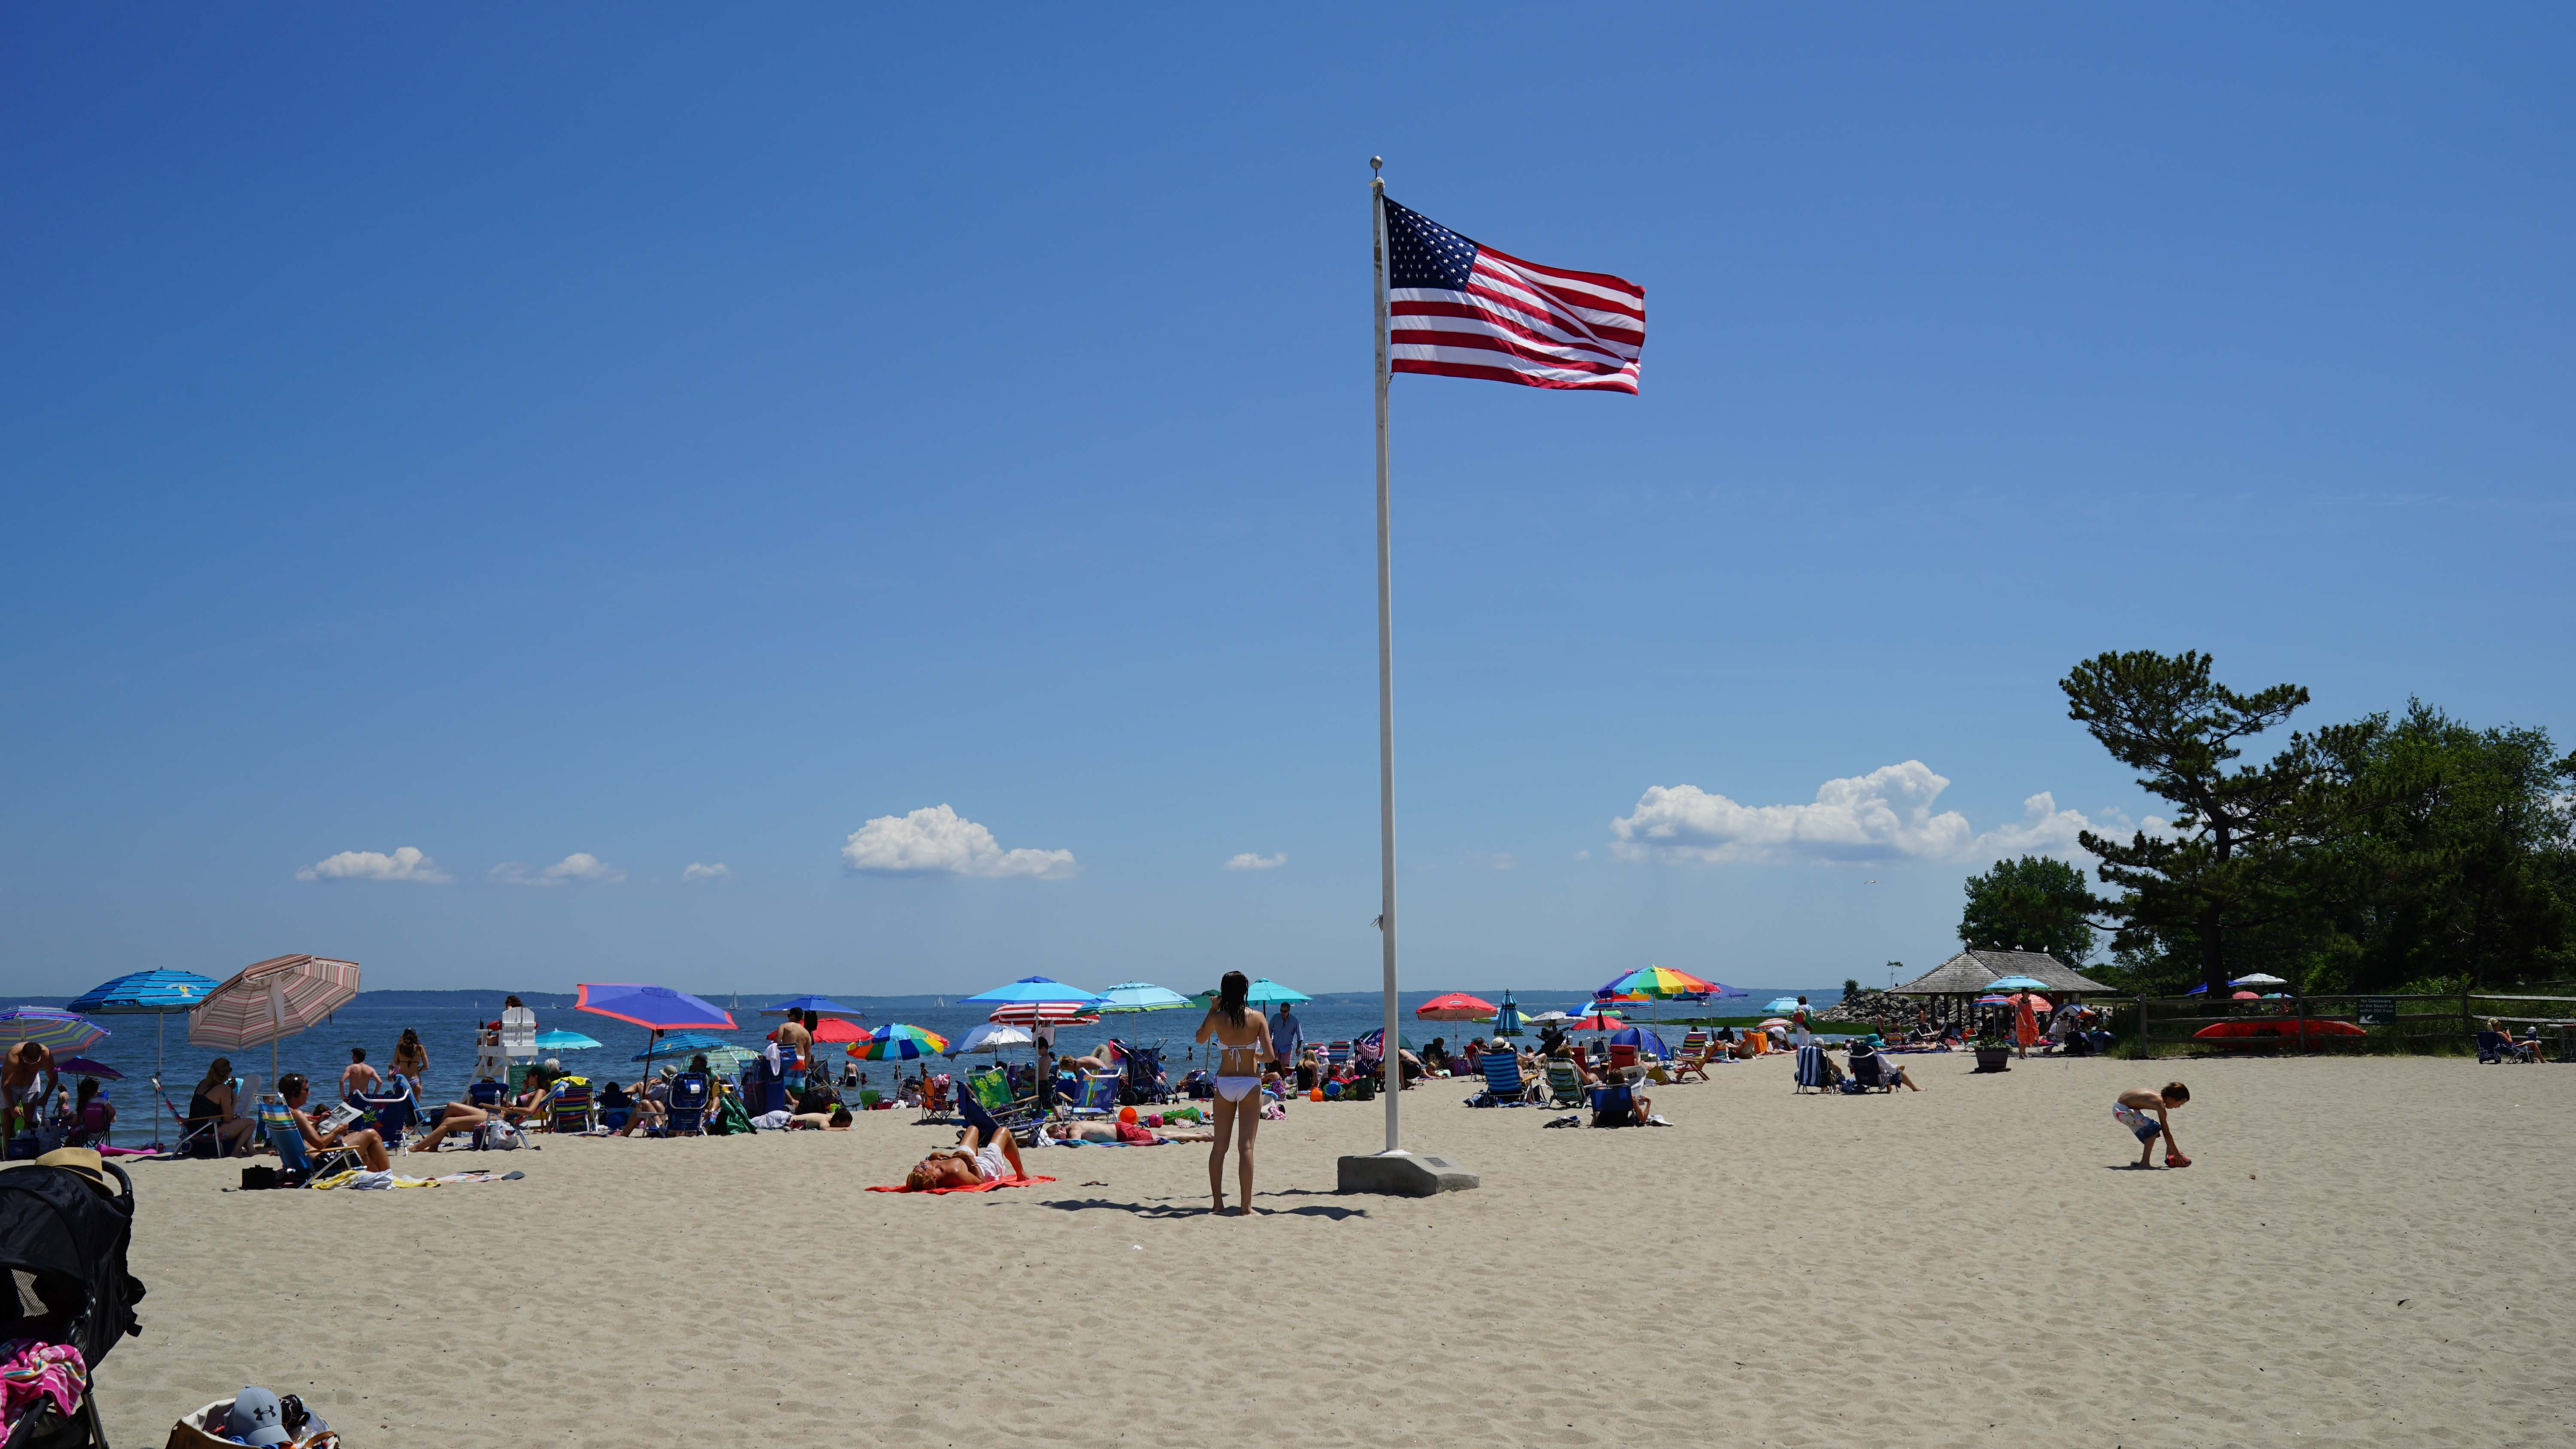 American flag pole Tods point